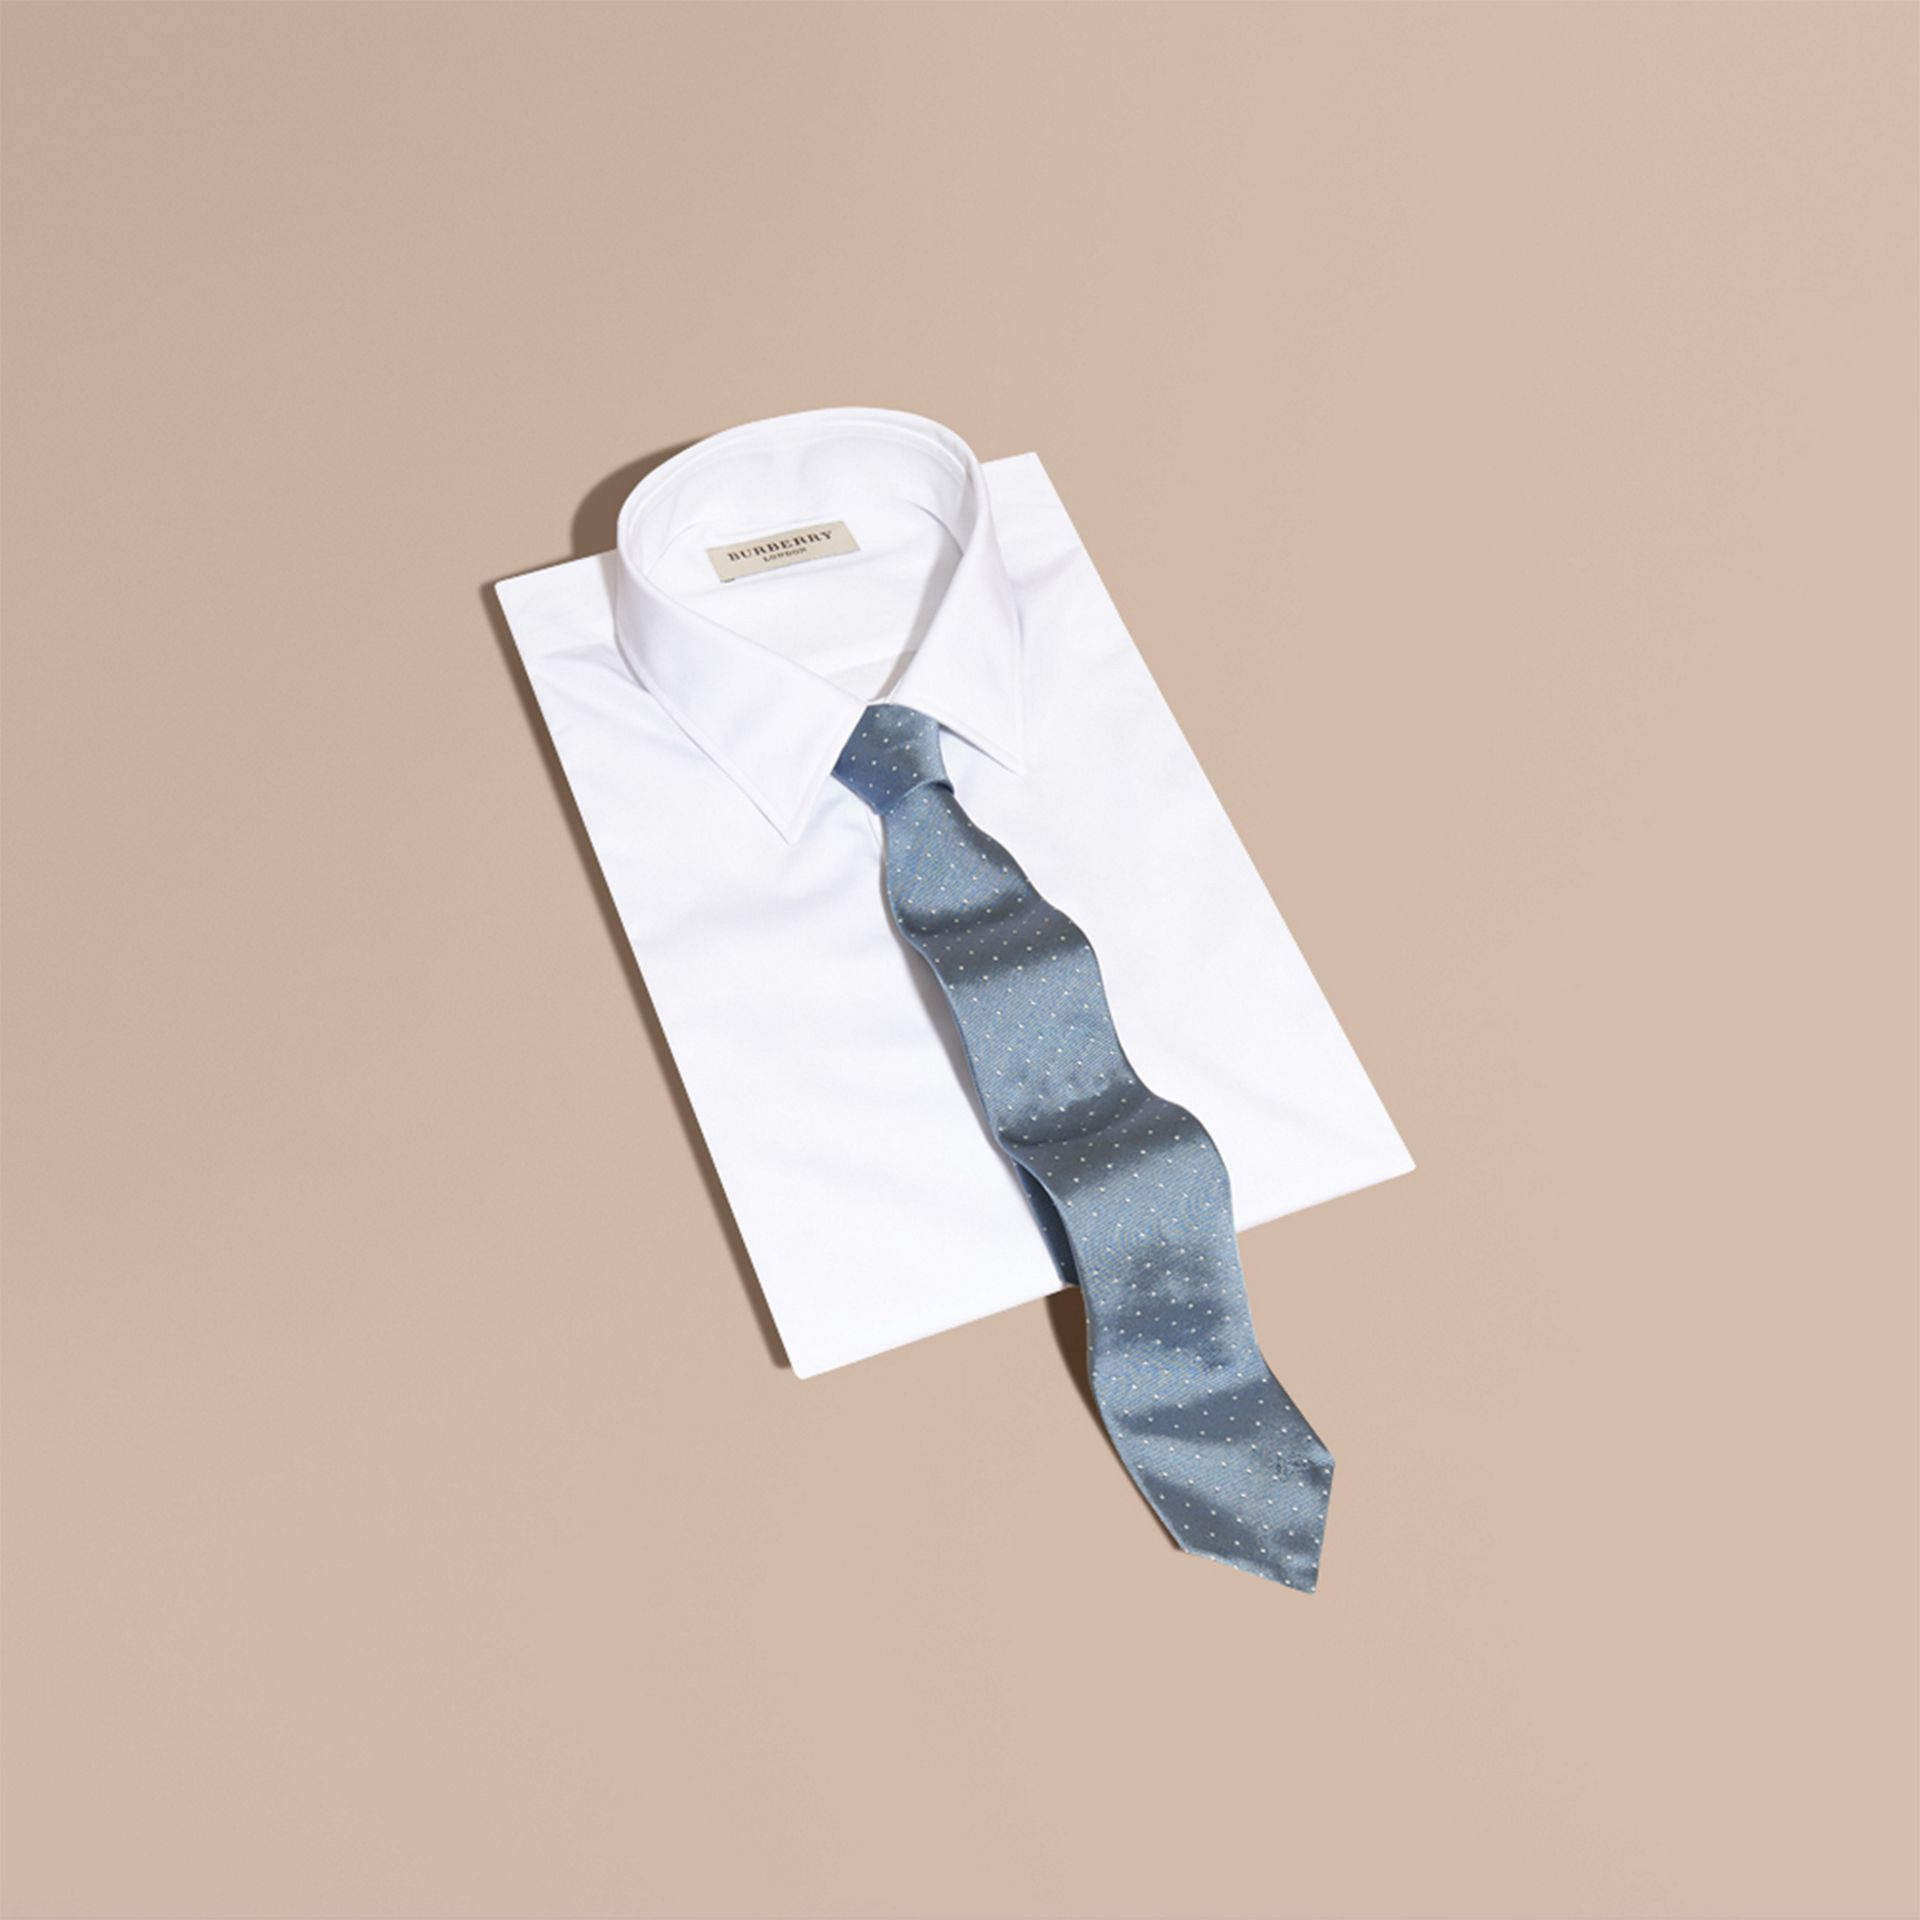 Modern Cut Polka-dot Silk Tie in Light Blue - Men | Burberry - gallery image 4